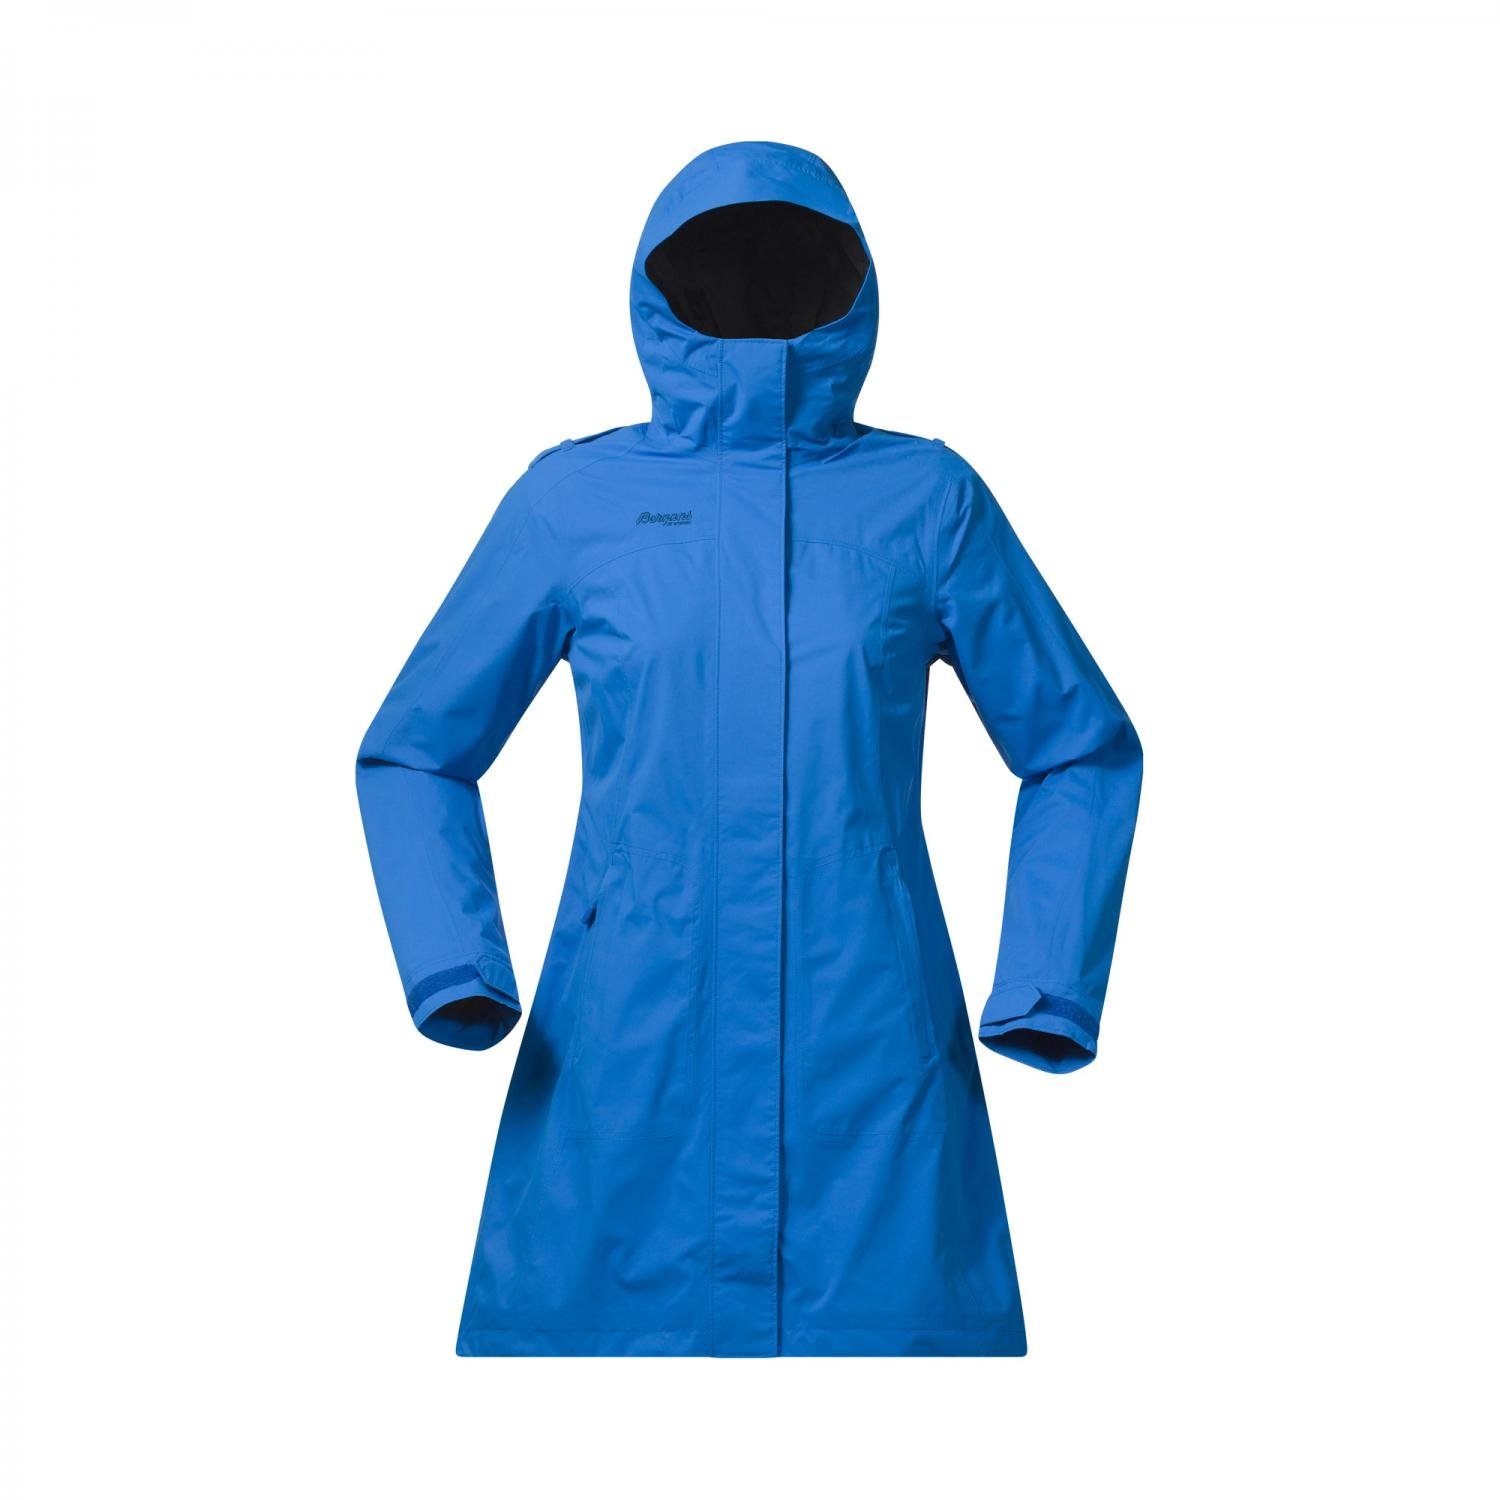 Bergans Damen Mantel Venli Lady Coat 5027